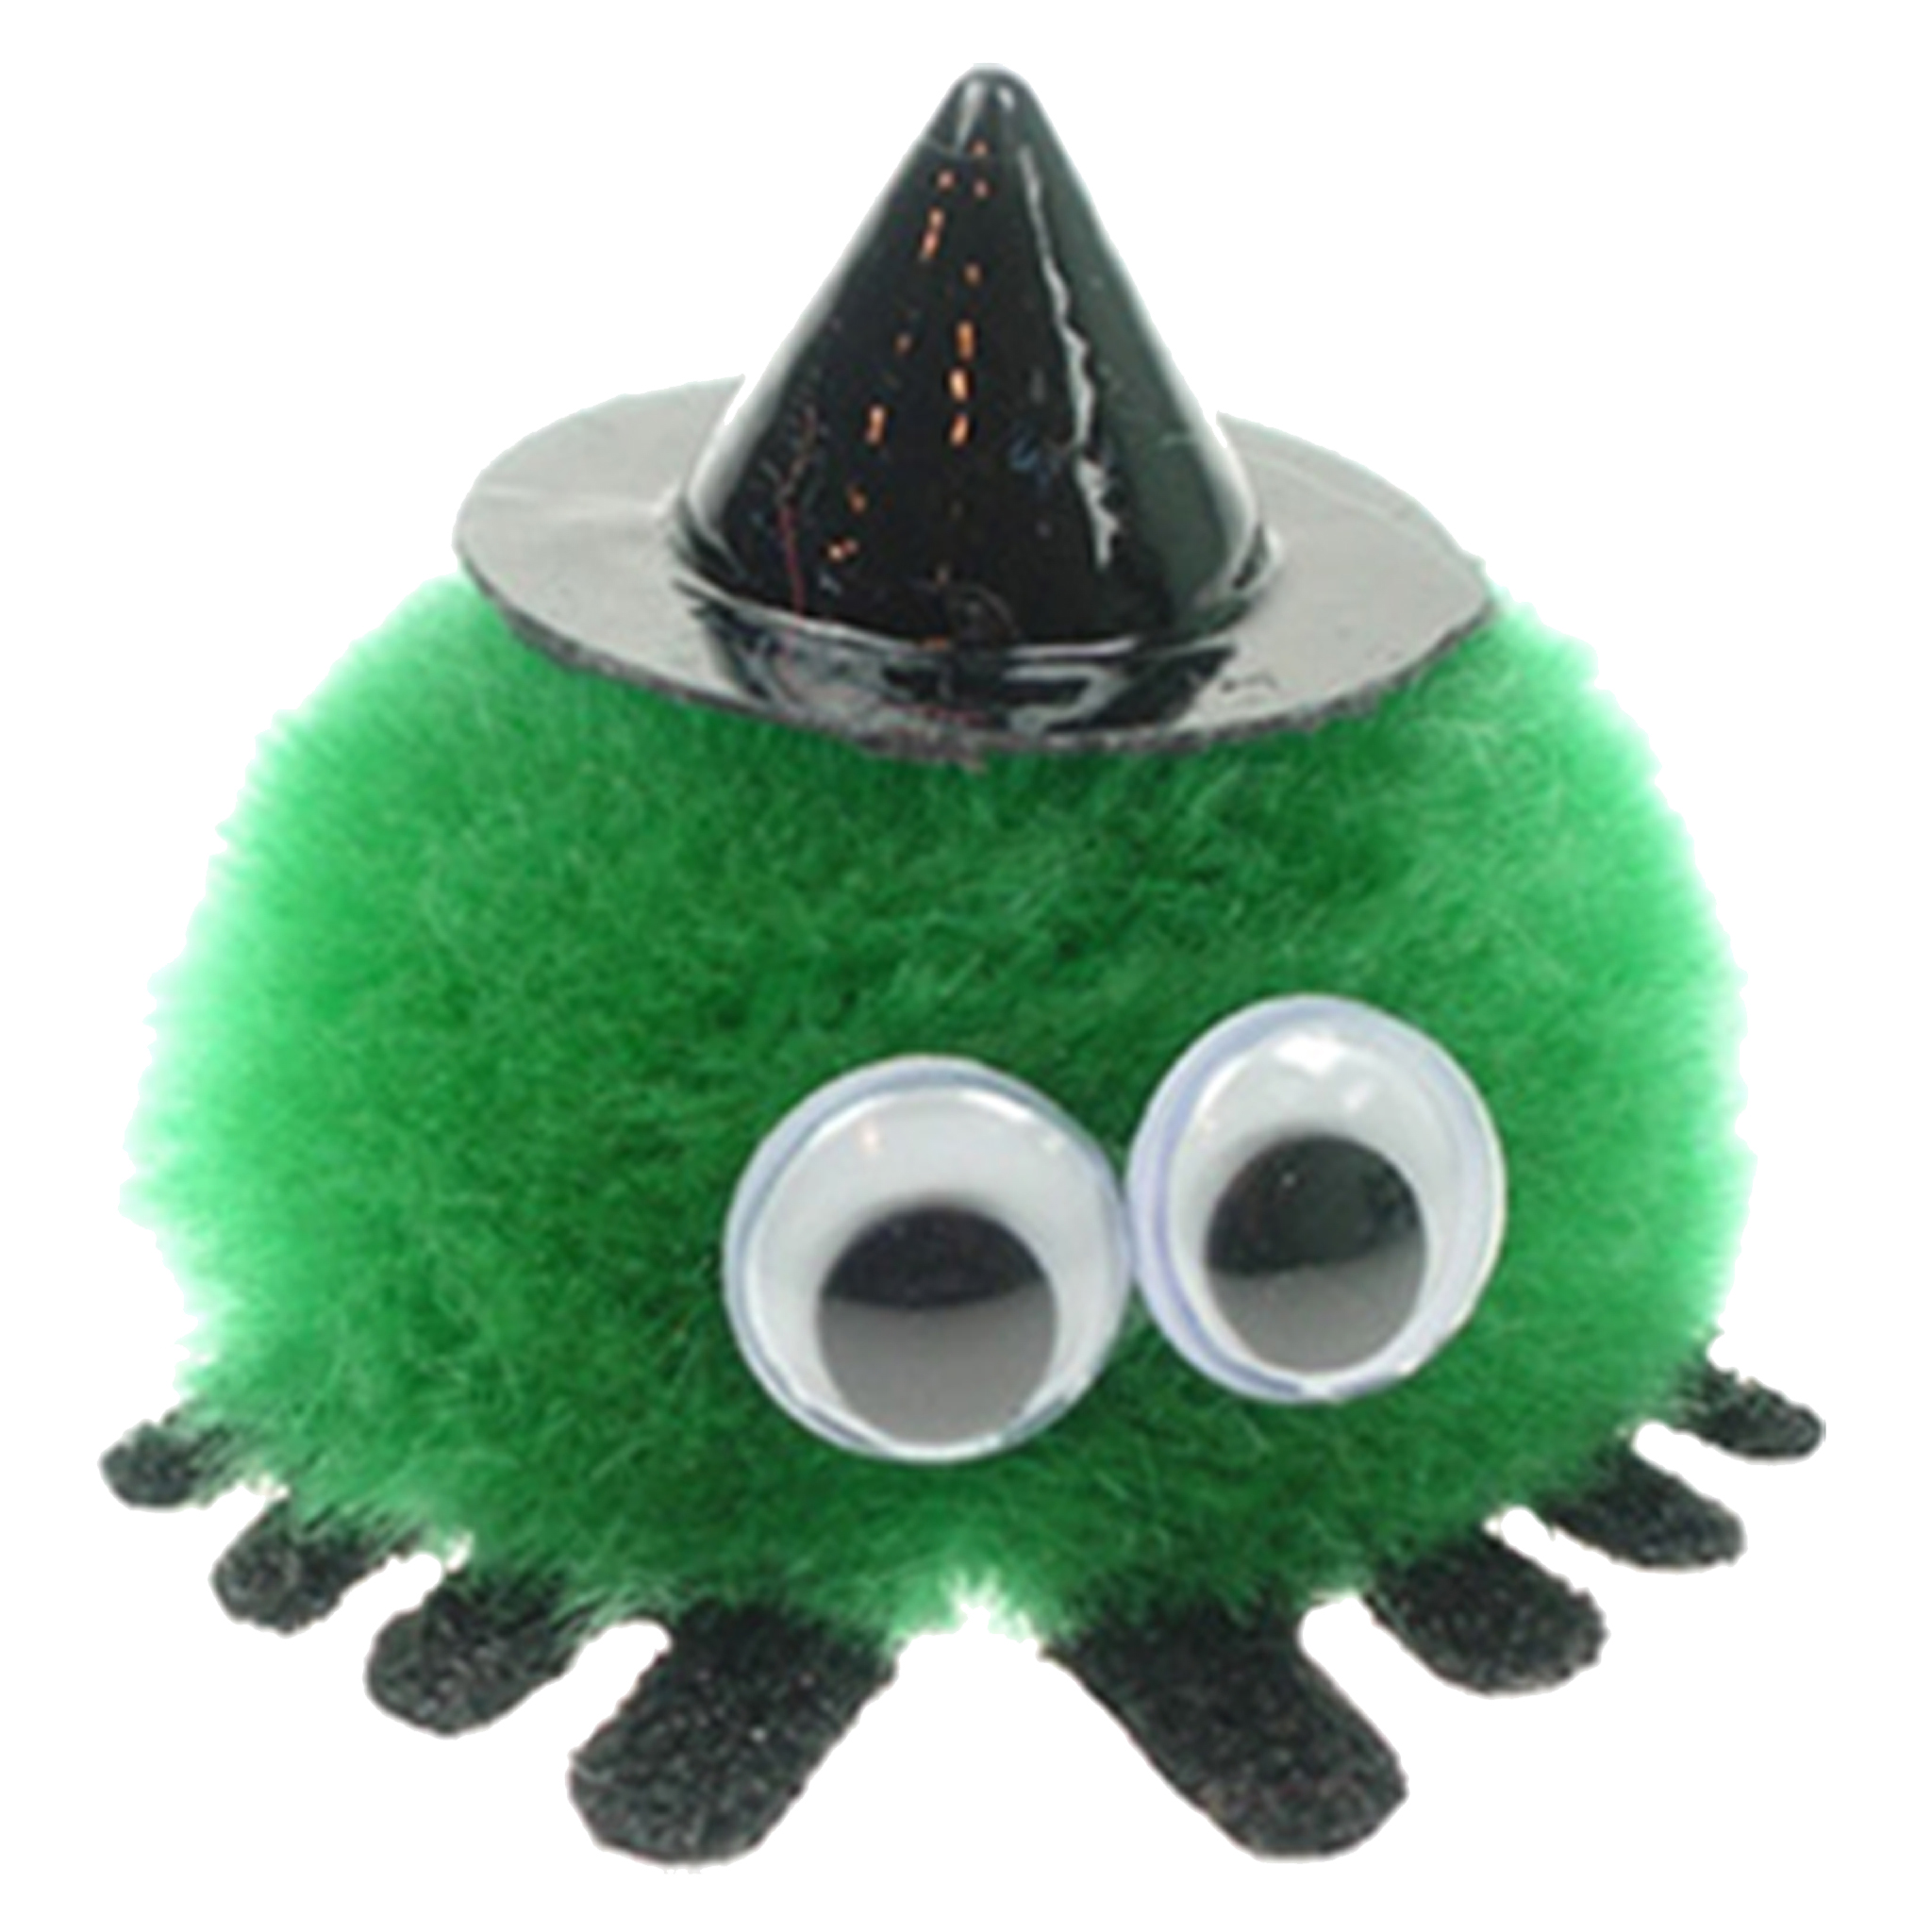 Hatted Logo Bugs - Witch - Buy Promotional Products UK